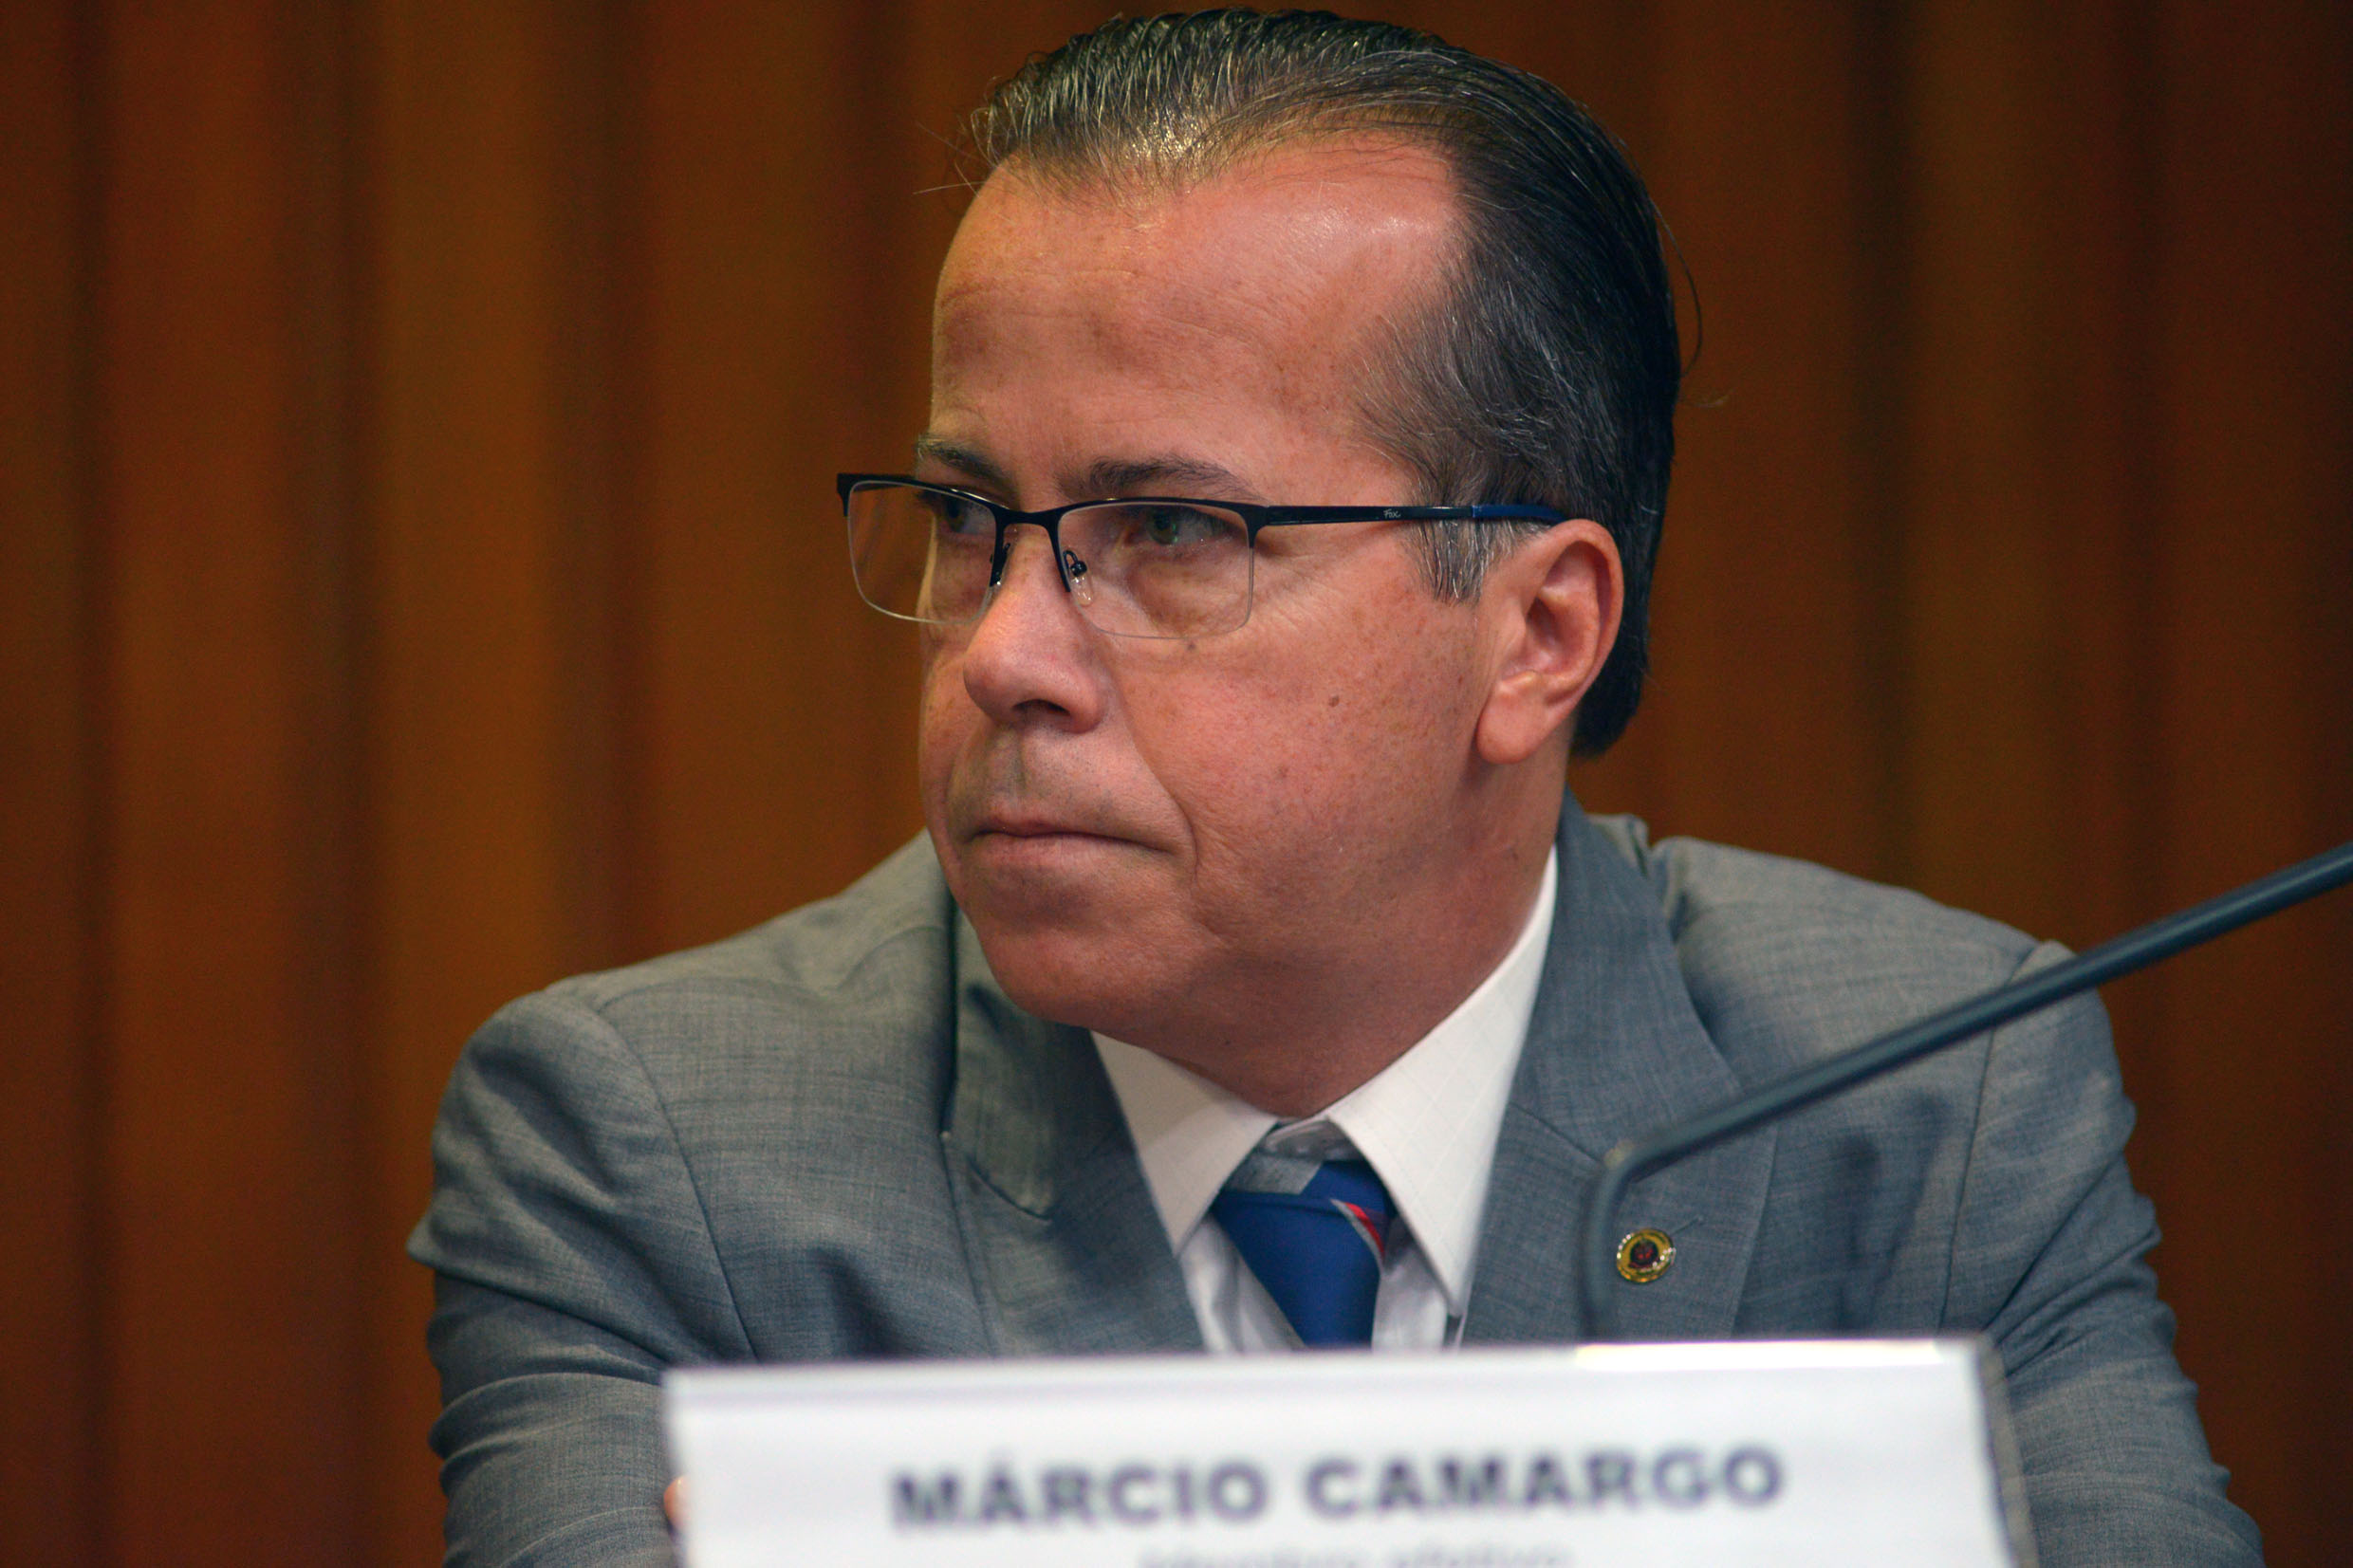 Marcio Camargo<a style='float:right' href='https://www3.al.sp.gov.br/repositorio/noticia/N-03-2018/fg219317.jpg' target=_blank><img src='/_img/material-file-download-white.png' width='14px' alt='Clique para baixar a imagem'></a>